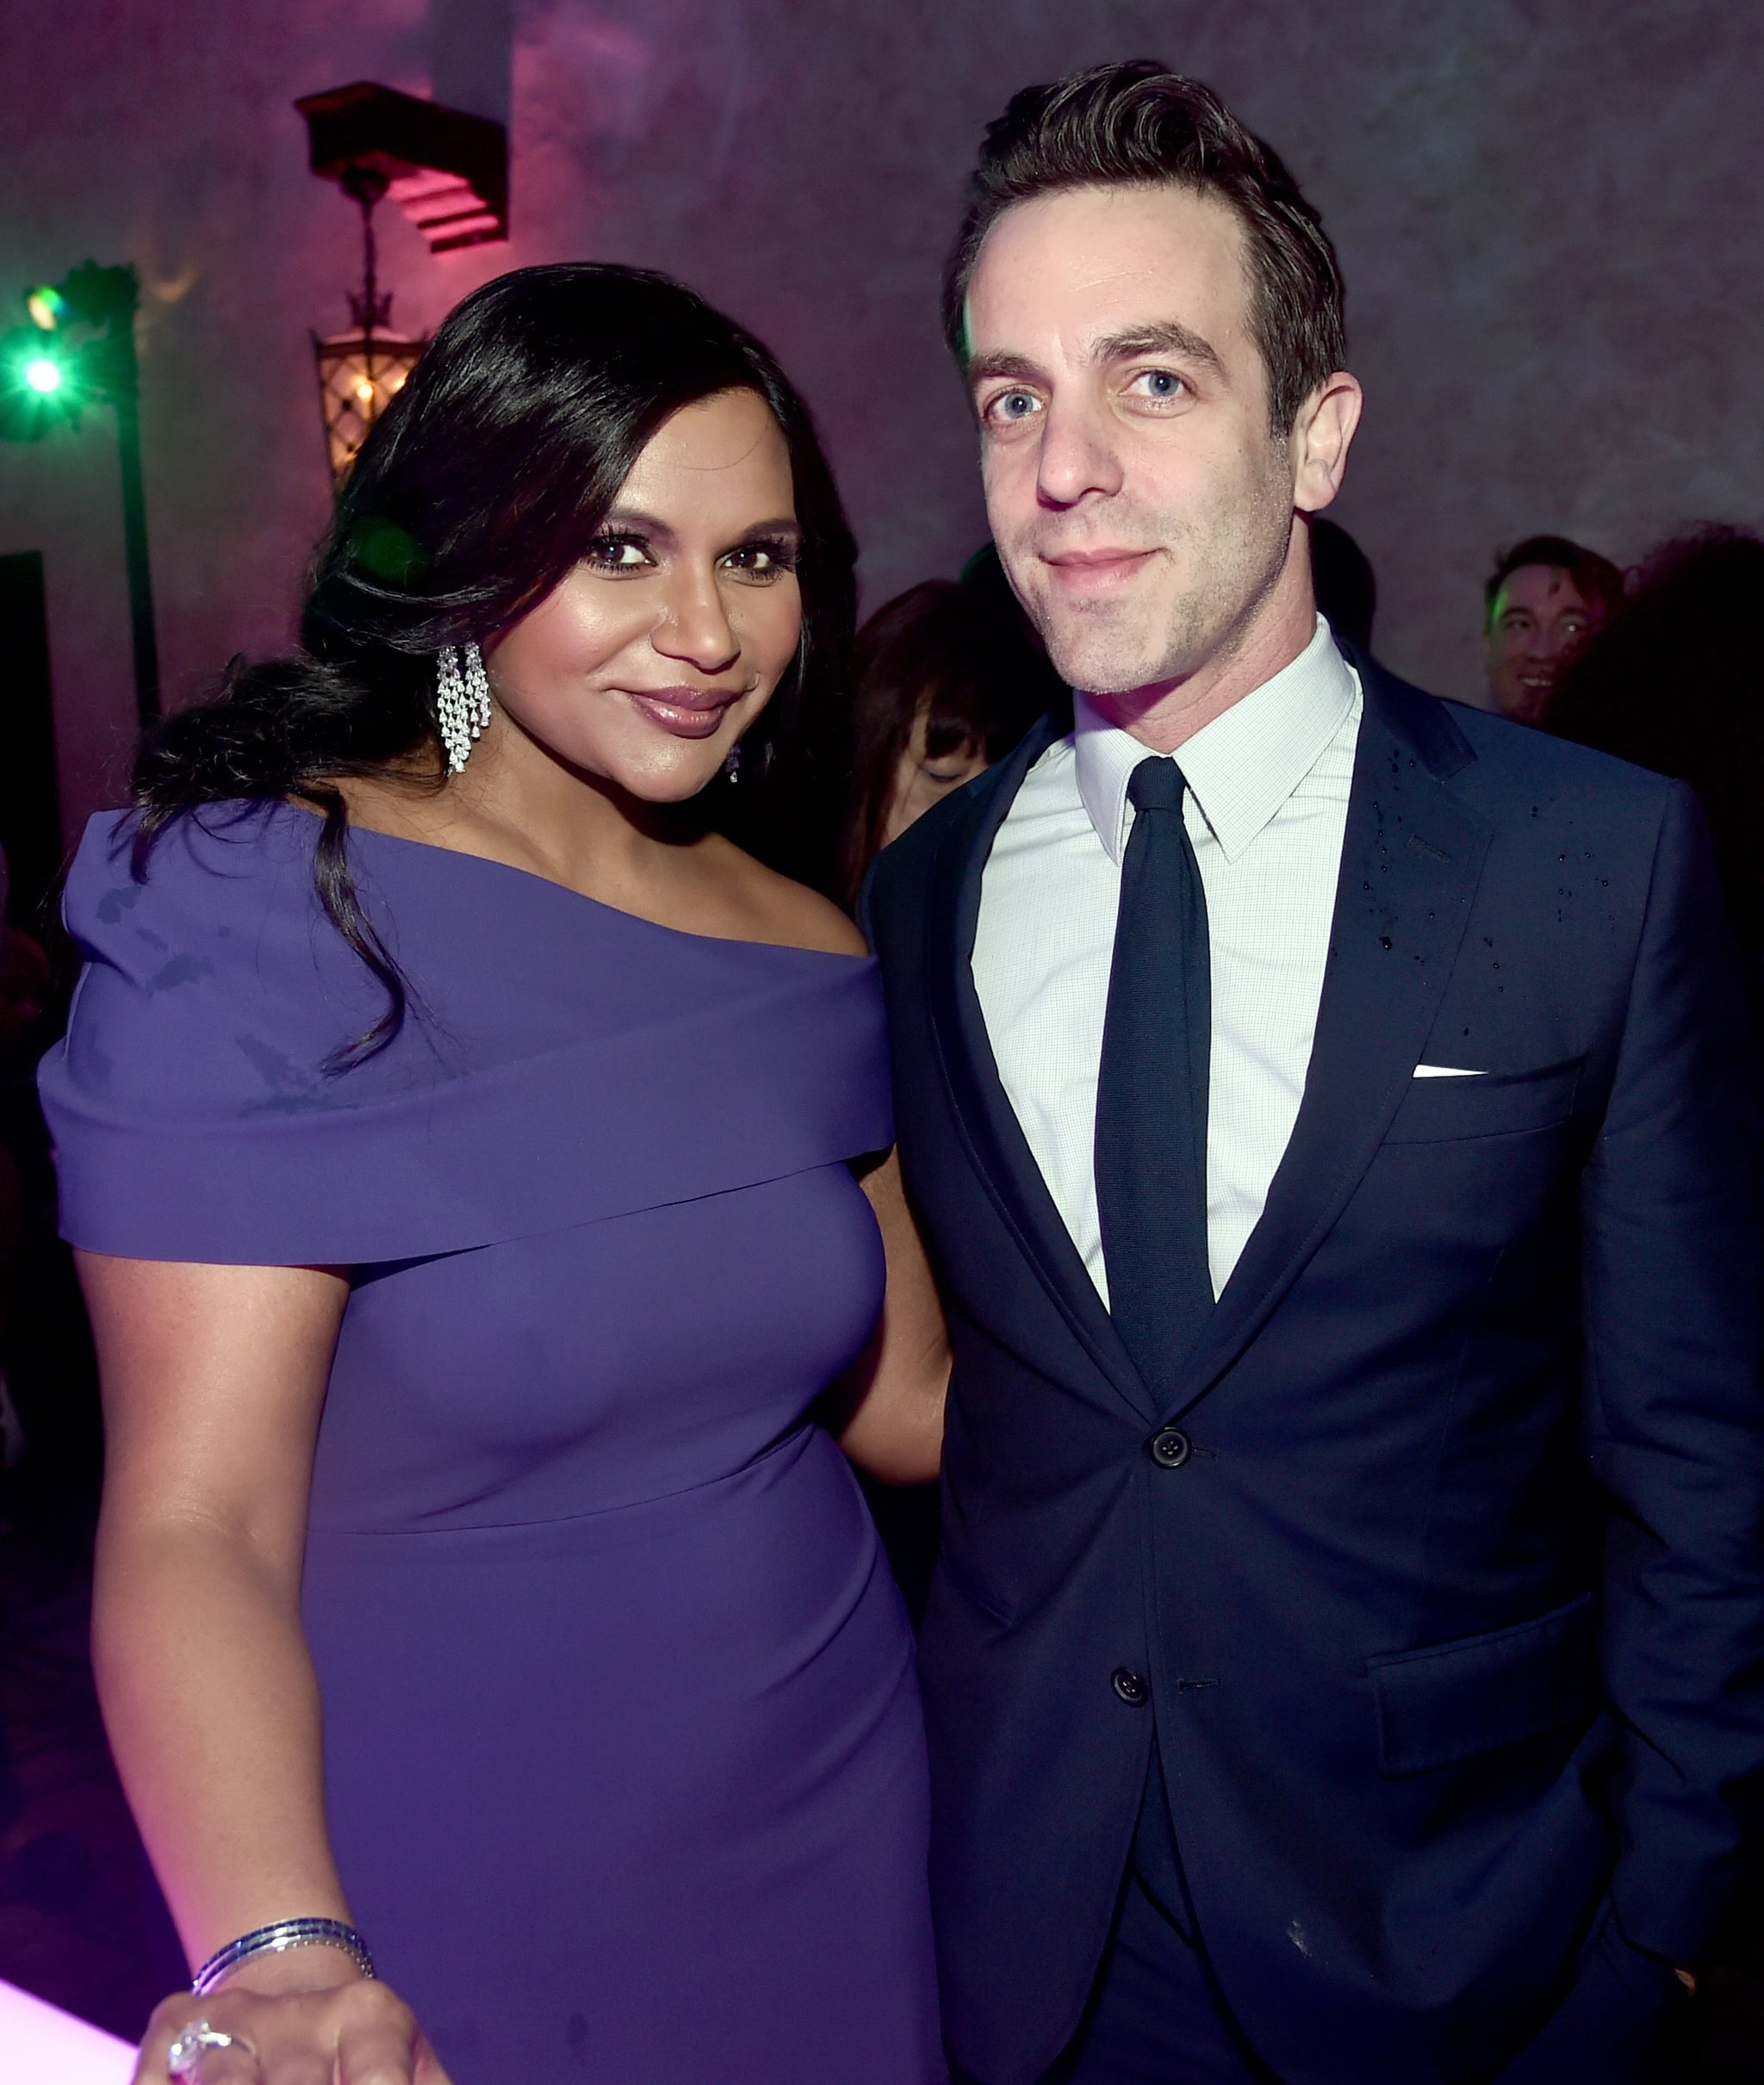 LOS ANGELES, CA - FEBRUARY 26:  Actor Mindy Kaling (L) and B. J. Novak at the world premiere of Disney?s 'A Wrinkle in Time' at the El Capitan Theatre in Hollywood CA, Feburary 26, 2018.  (Photo by Alberto E. Rodriguez/Getty Images for Disney)